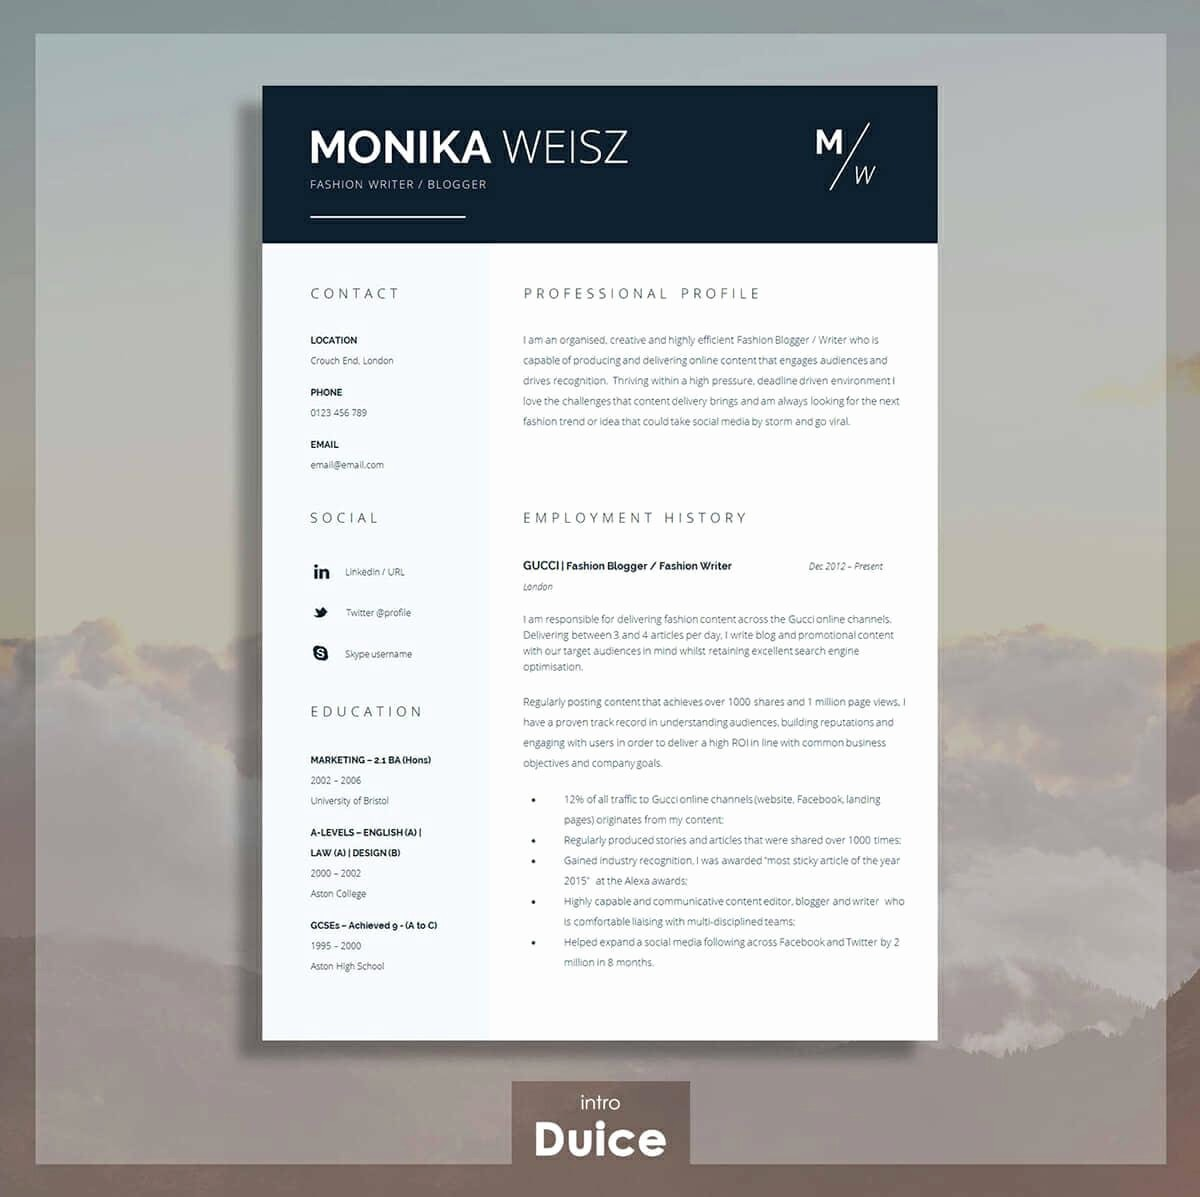 Best Ms Word Resume Templates Unique Best Resume Templates 15 Examples to Download & Use Right